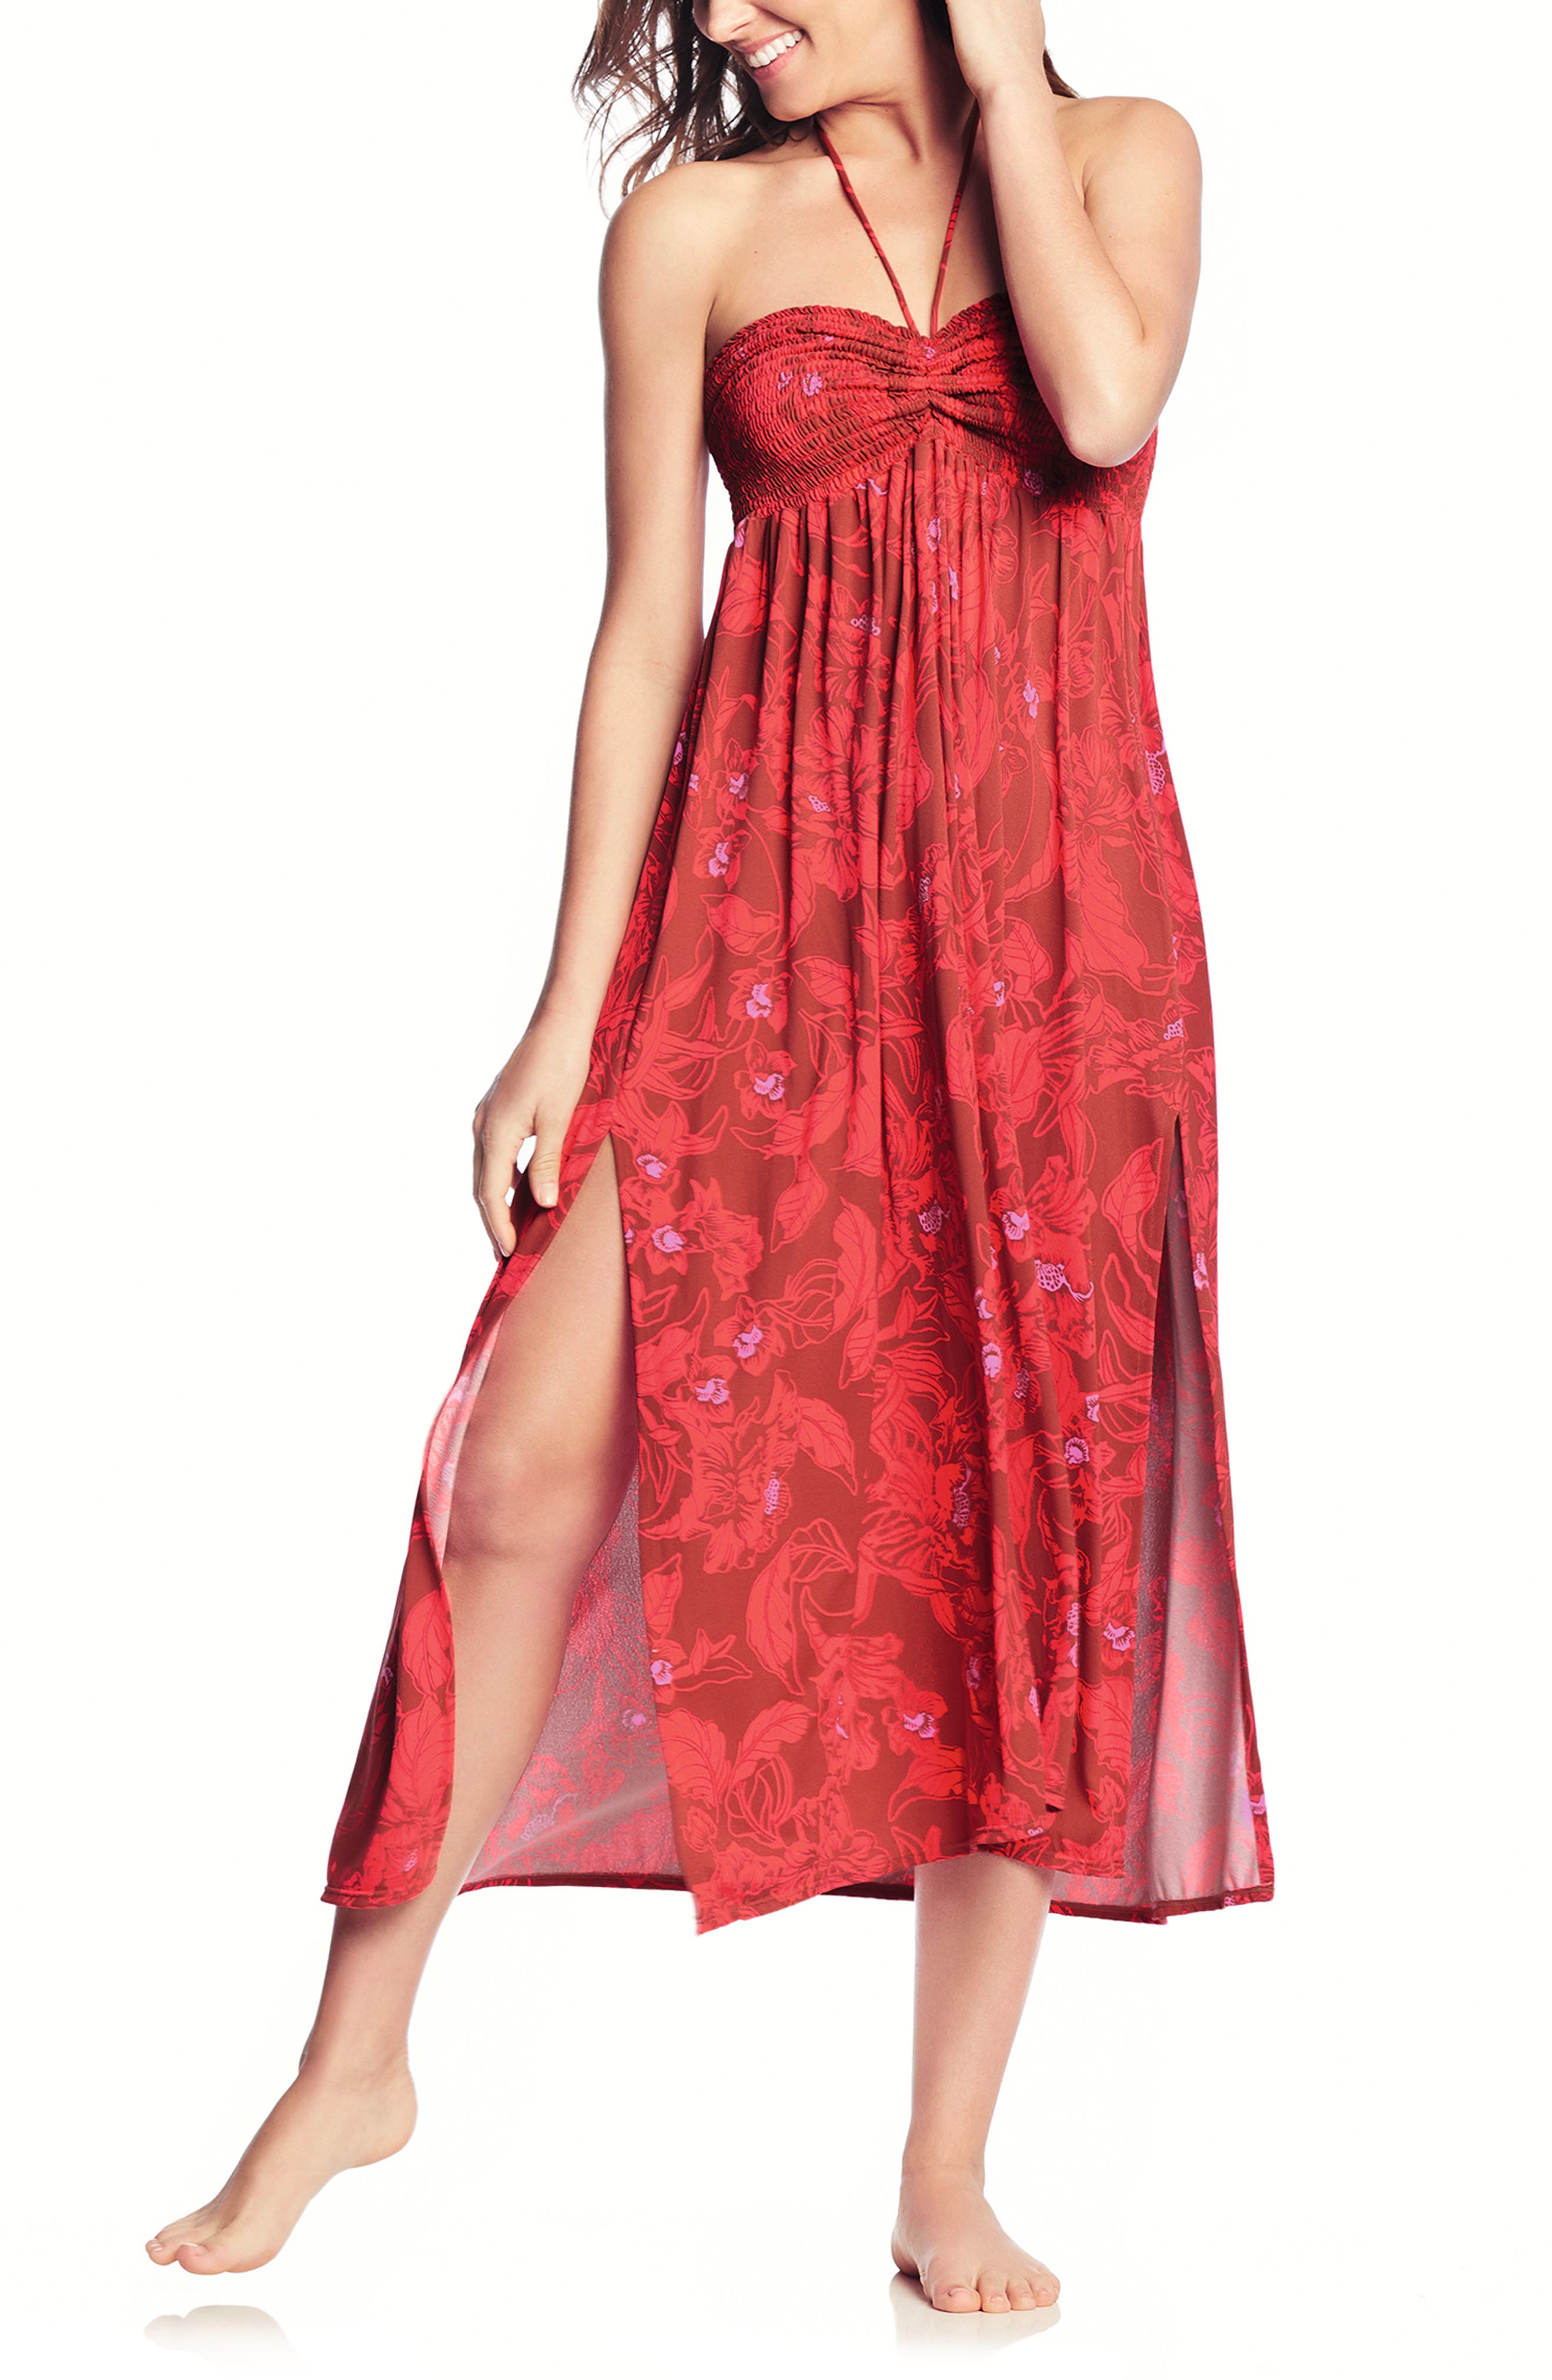 Maaji Unexpected Cover-Up, Red